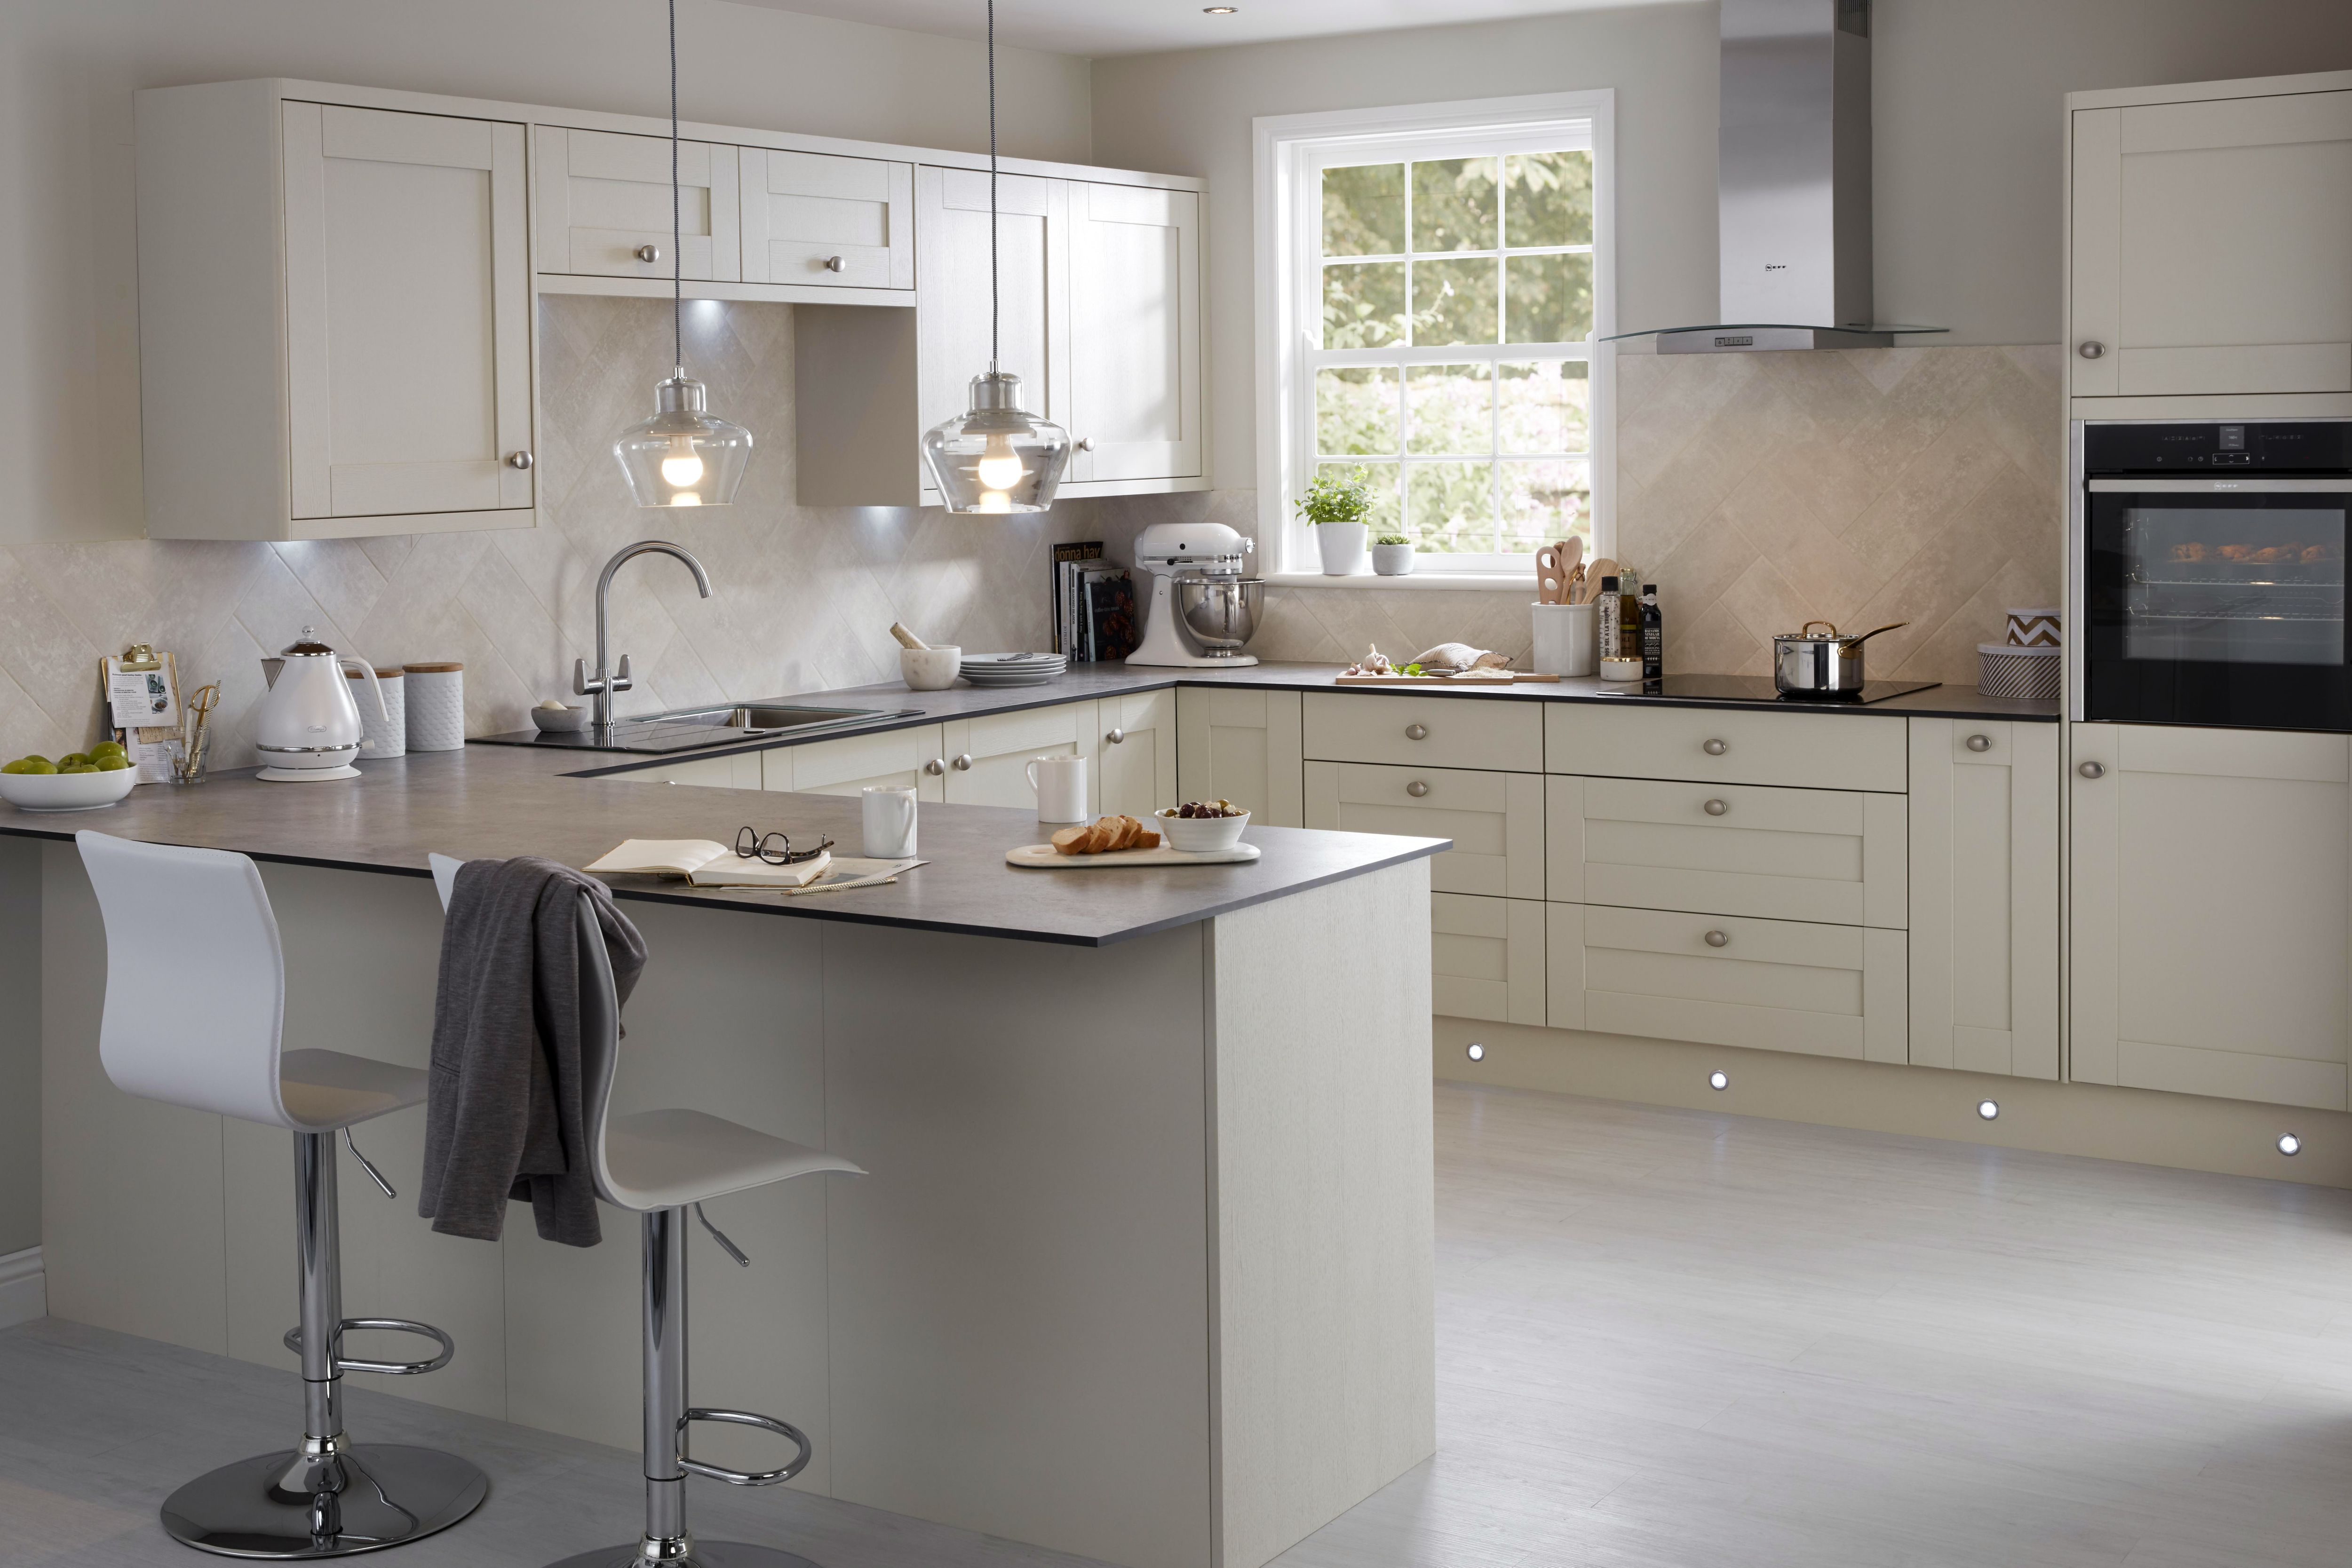 kitchen ideas images stylish steps to planning new kitchen kitchen ideas planning diy at bq